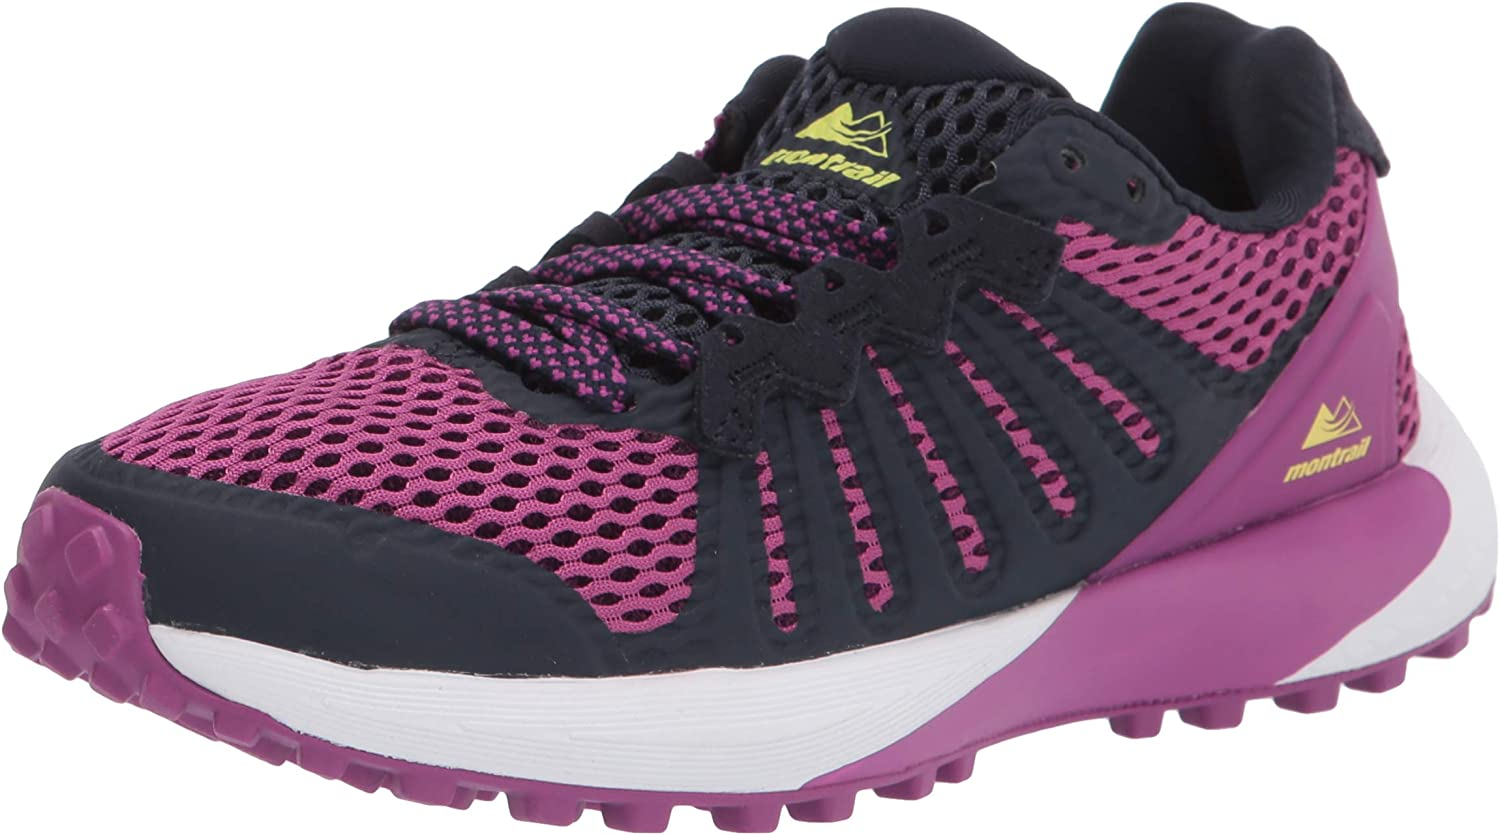 Free shipping anywhere in the nation Columbia Women's Houston Mall Montrail Sneaker F.k.t.